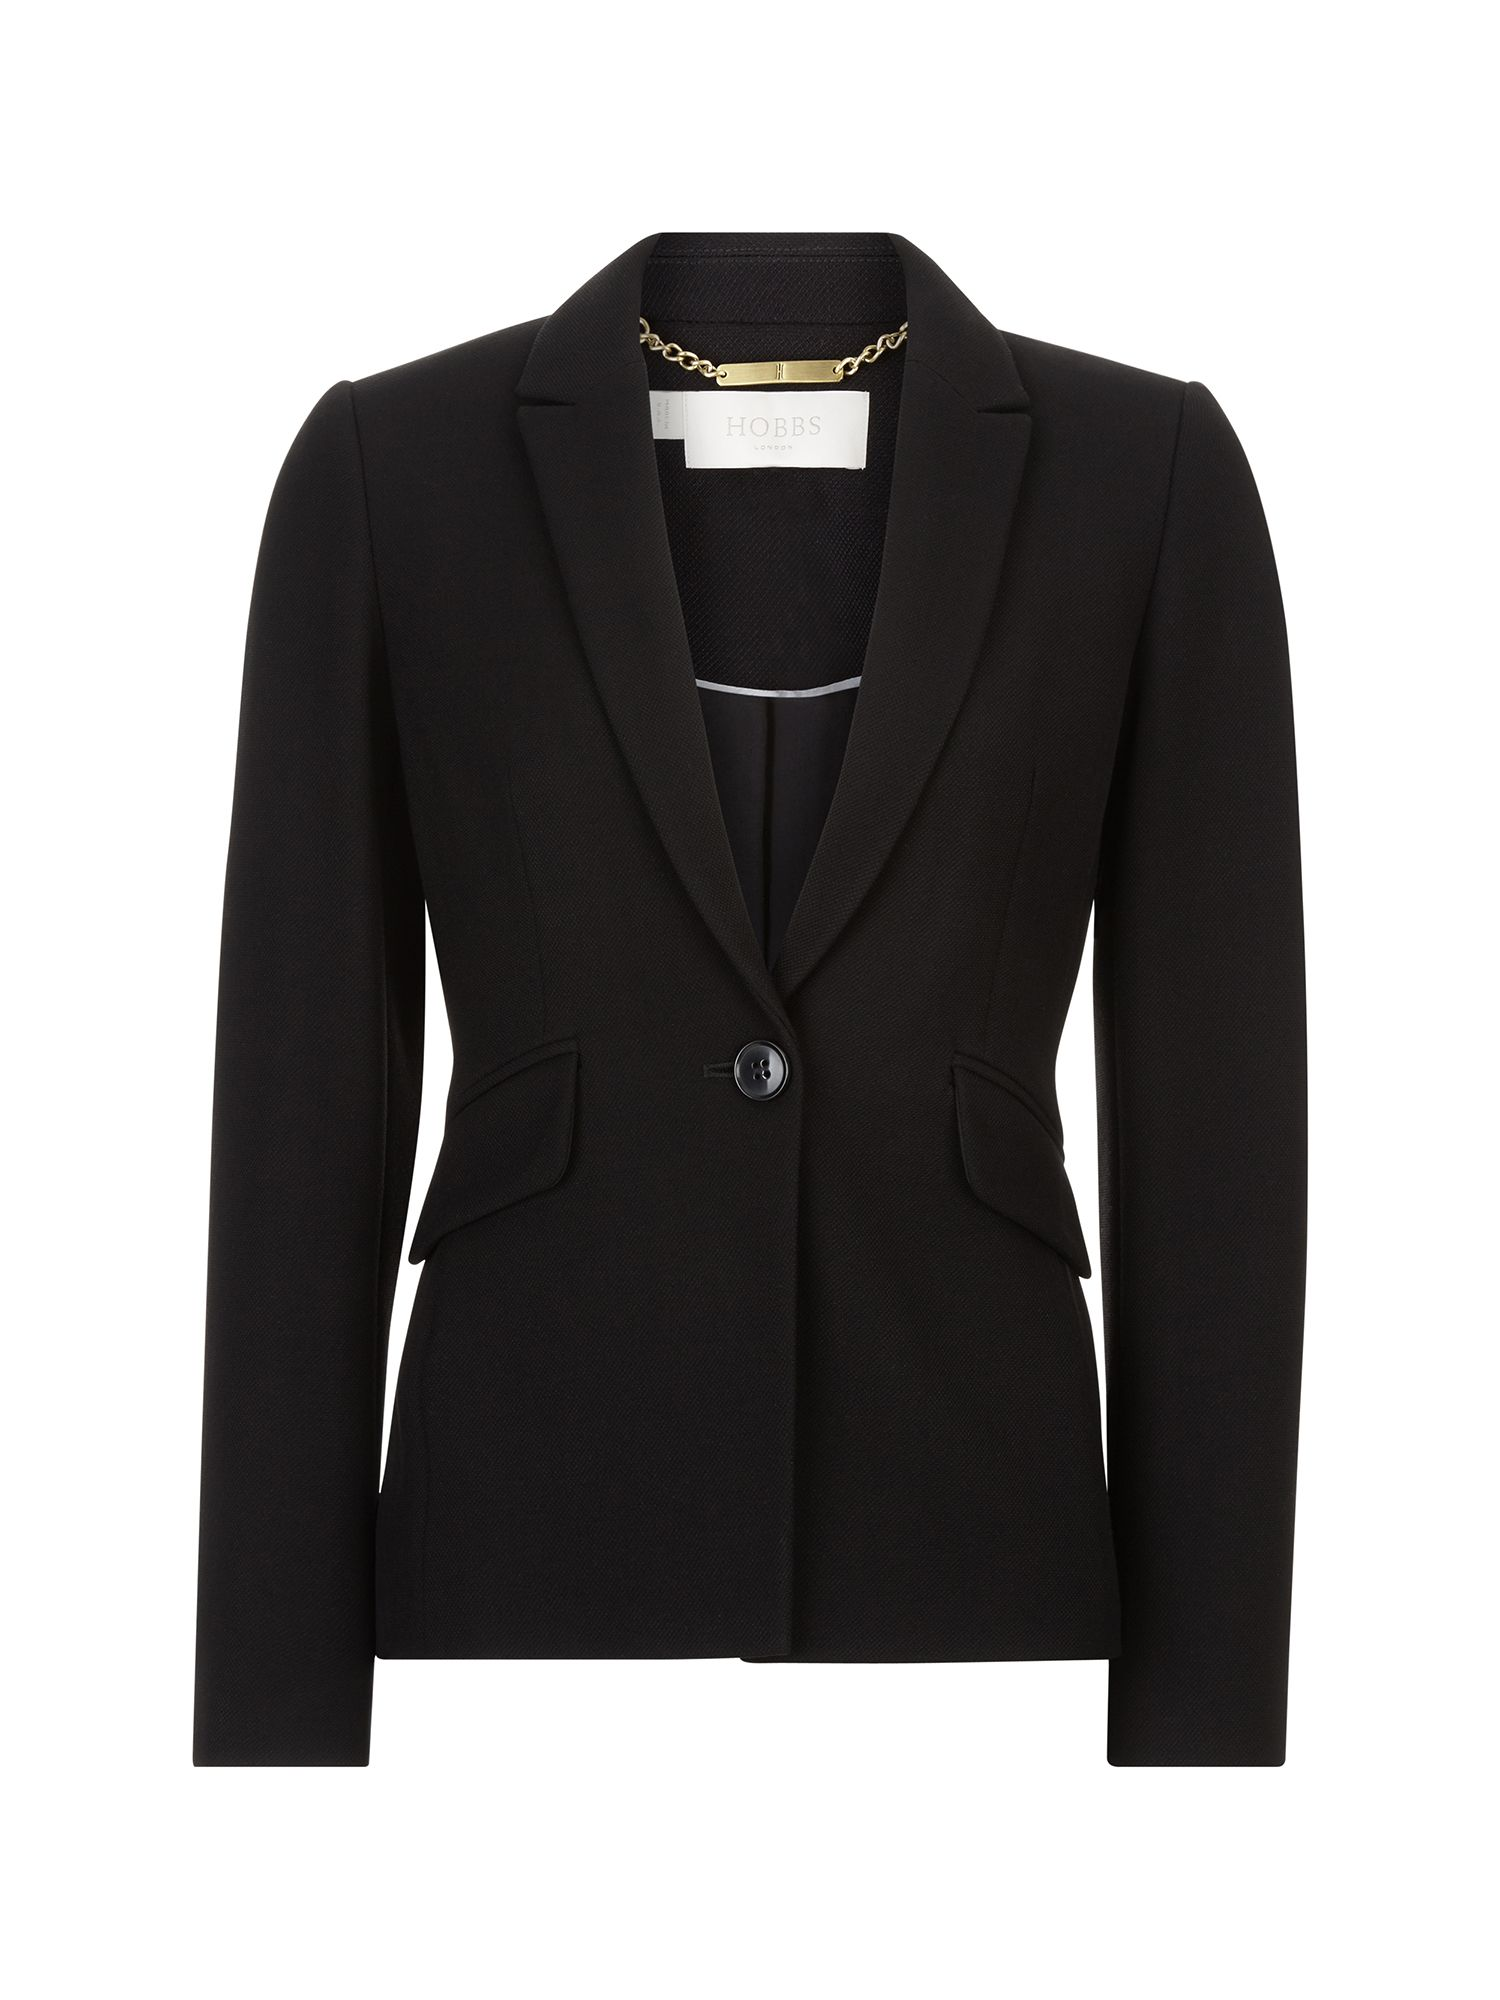 Hobbs Gabi Jacket, Black